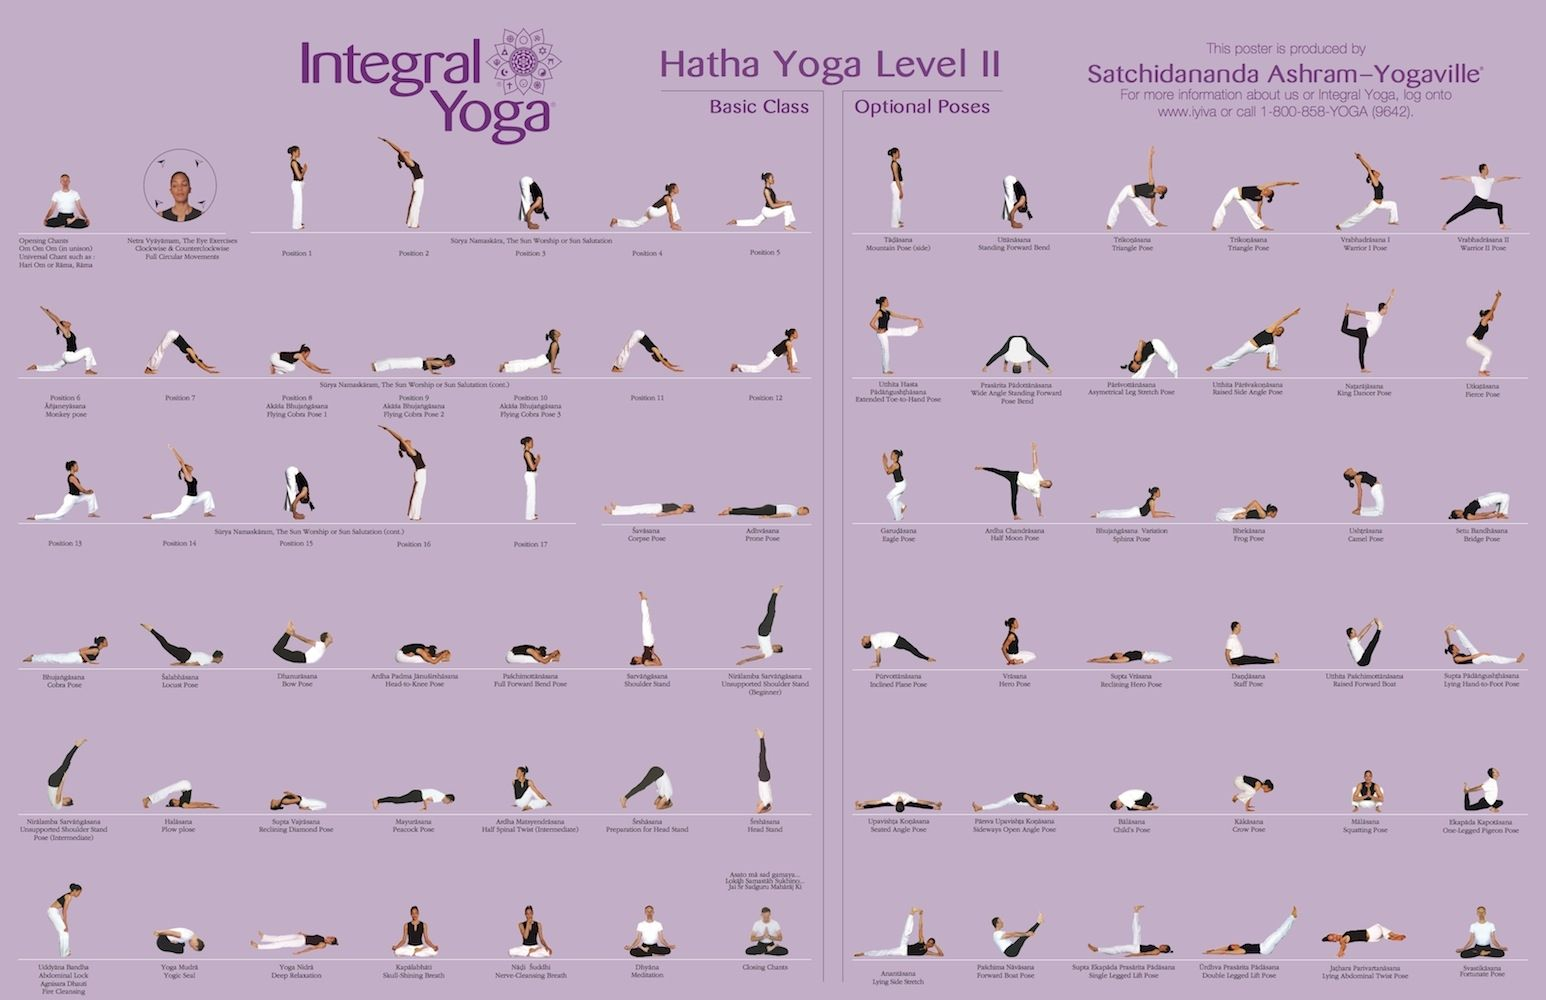 Hatha Yoga Integral yoga hatha level 2 | Simply Yoga | Hatha